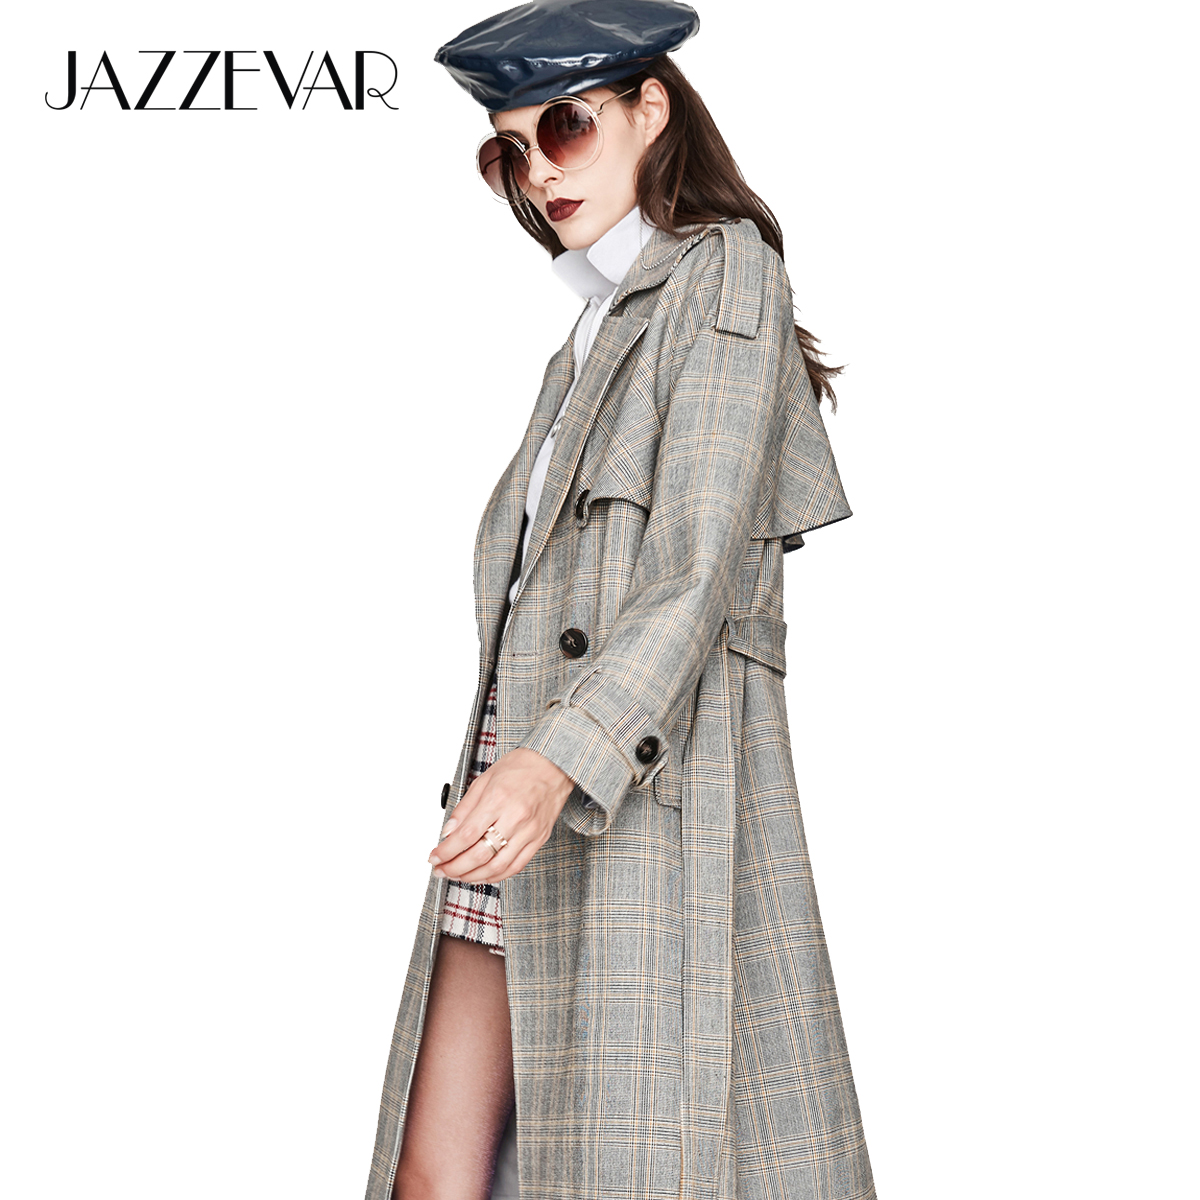 JAZZEVAR new 2019 Autumn Fashion Street Casual Women s Vintage plaid Double Breasted Trench coat Outerwear